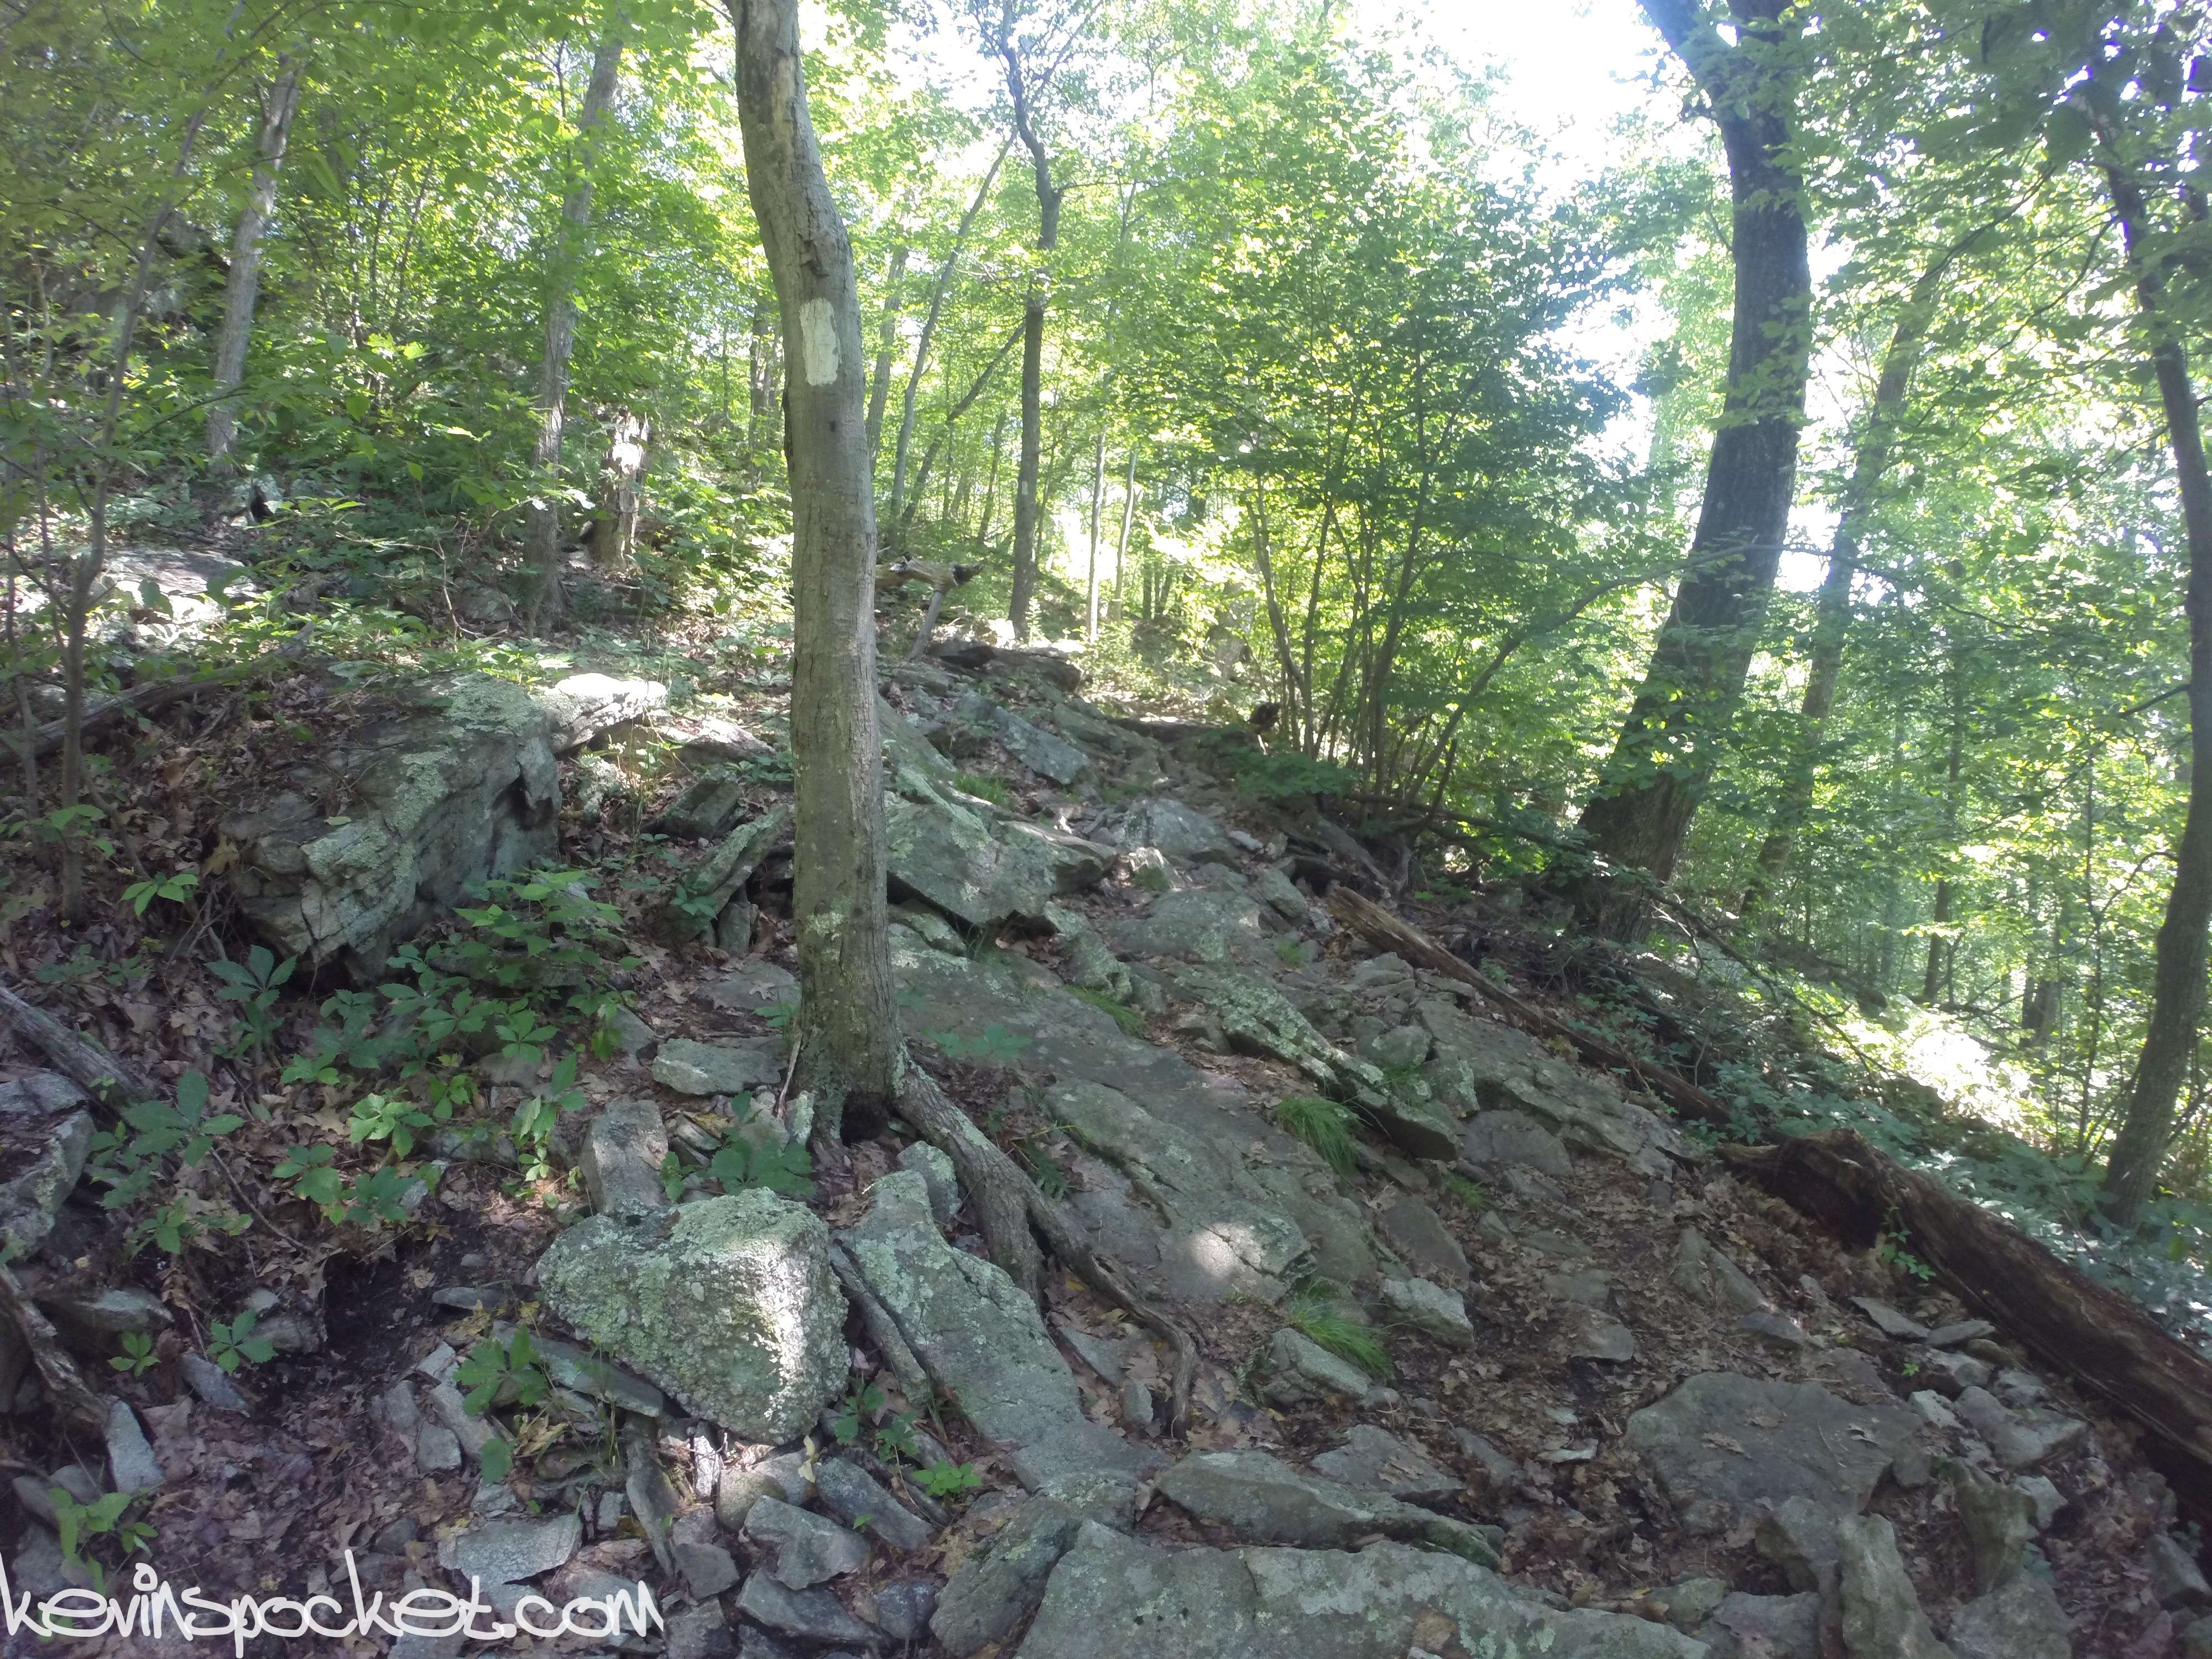 High Point State Park | Hiking the Appalachian and Monument trails – kevinspocket